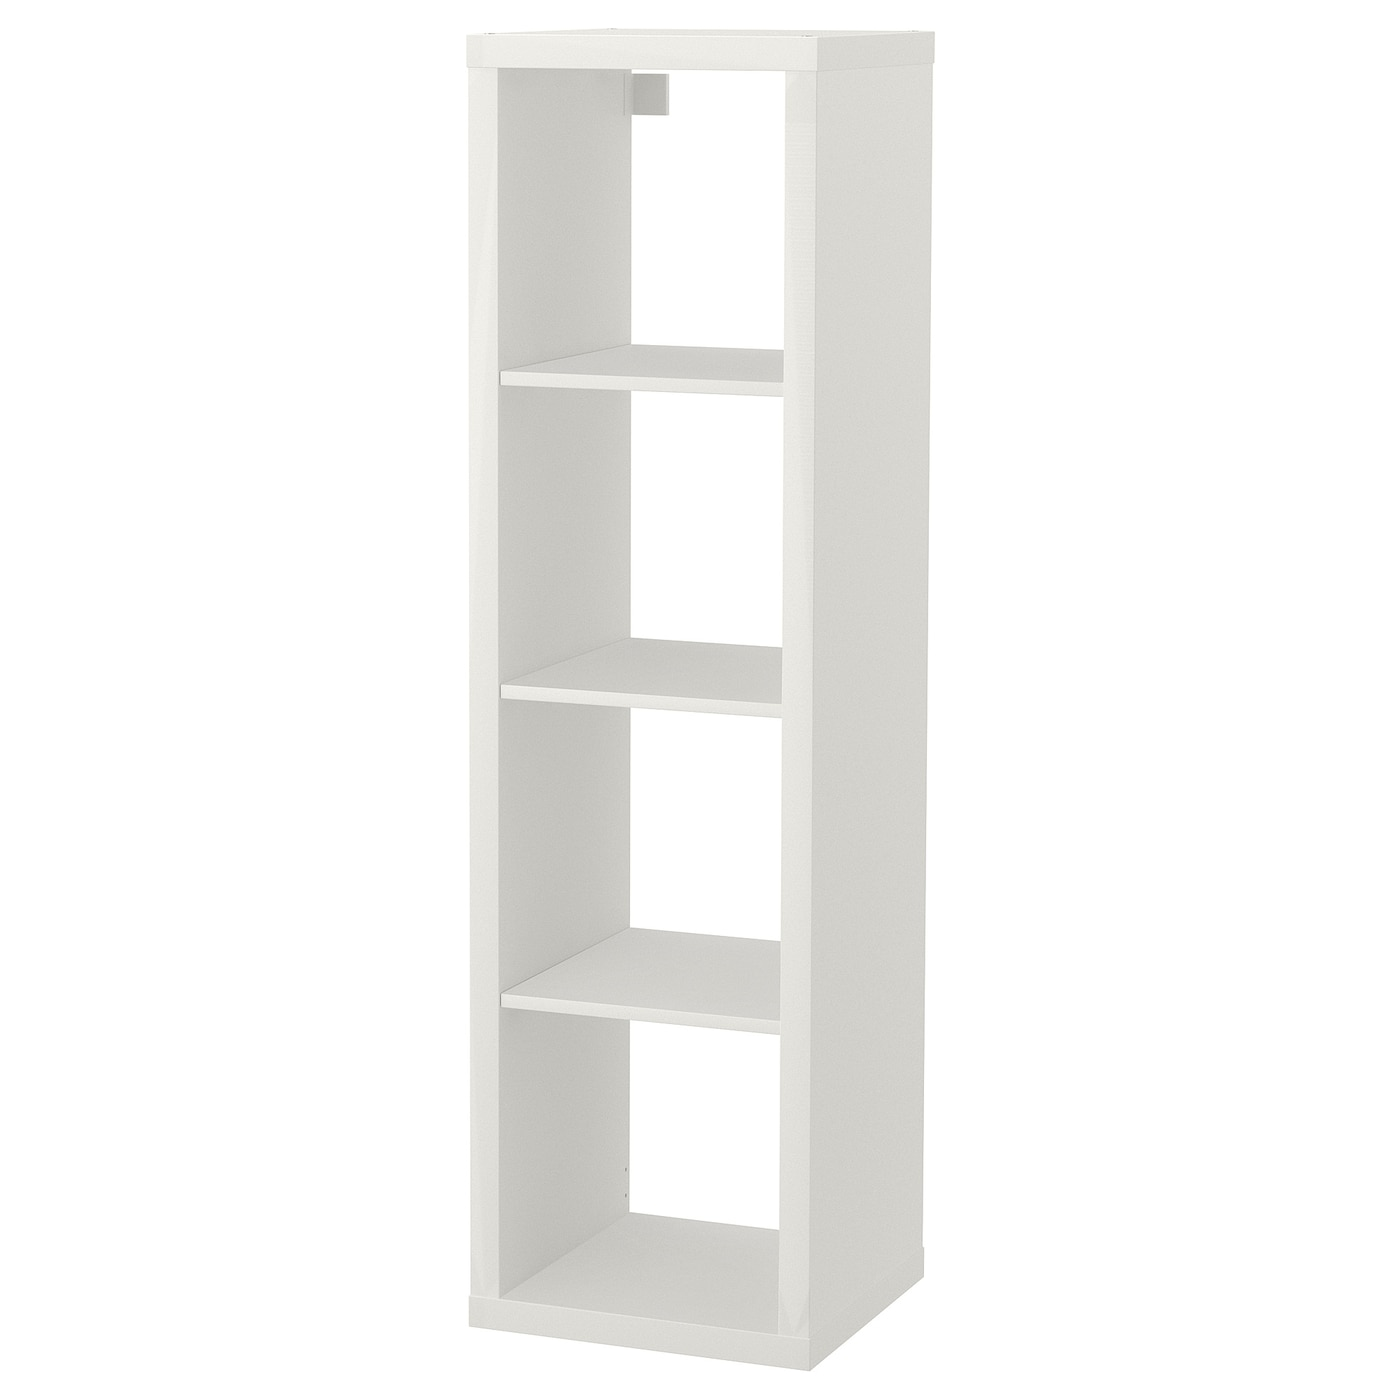 Bibliothek Kallax Ikea Regal Ideal Fur Korbe Oder Boxes 77 X 77 Cm